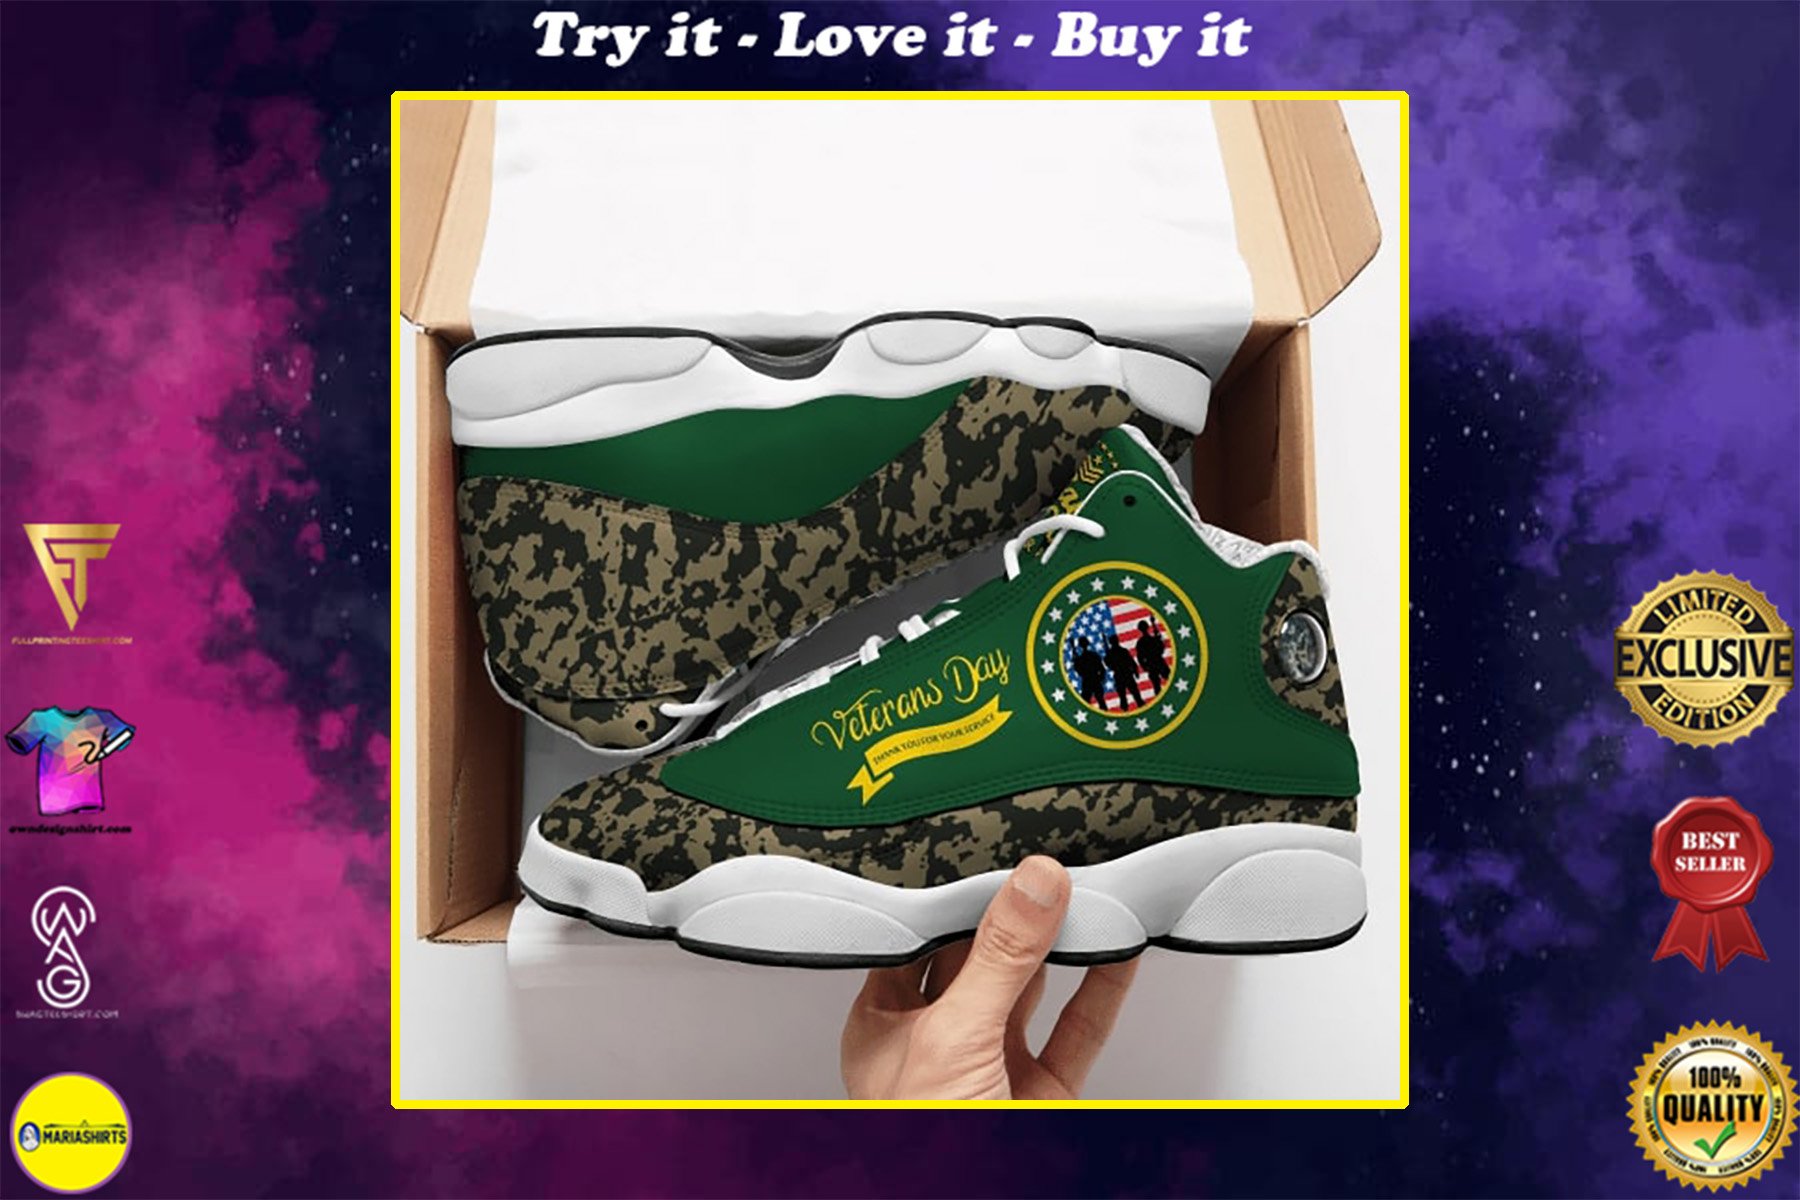 veterans day thank you for your service camo air jordan 13 shoes